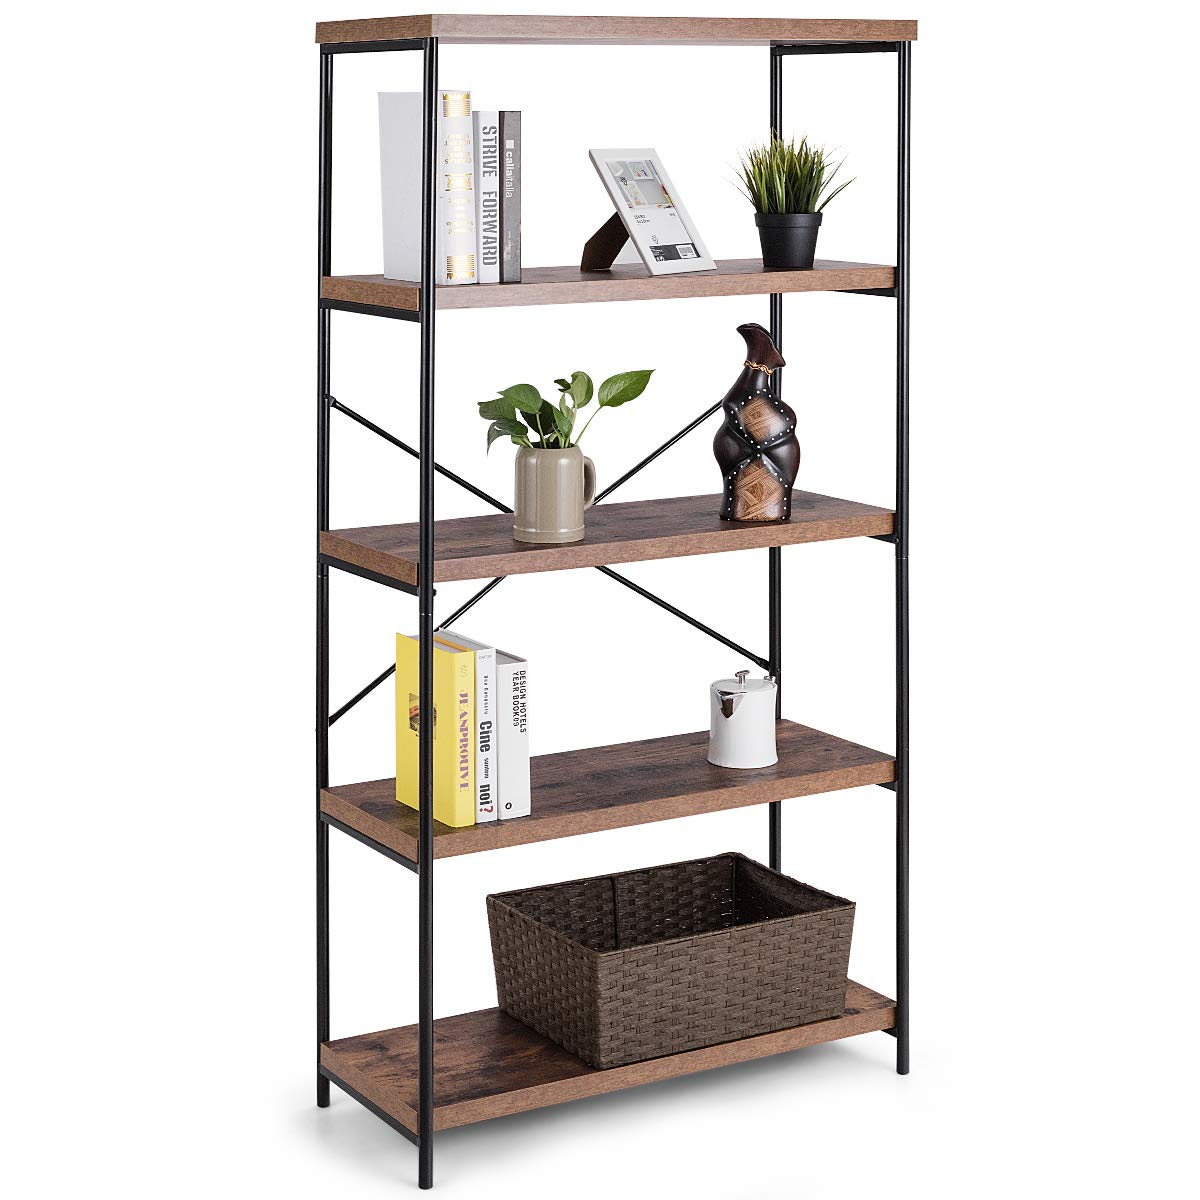 Tangkula 4-Tier Bookcase, Multipurpose Rustic Industrial Bookshelf, Décor Accent for Home, Office, Living Room, Bedroom, Wood Shelves w/Metal X-Shaped Frame, Display Bookshelf (Brown)